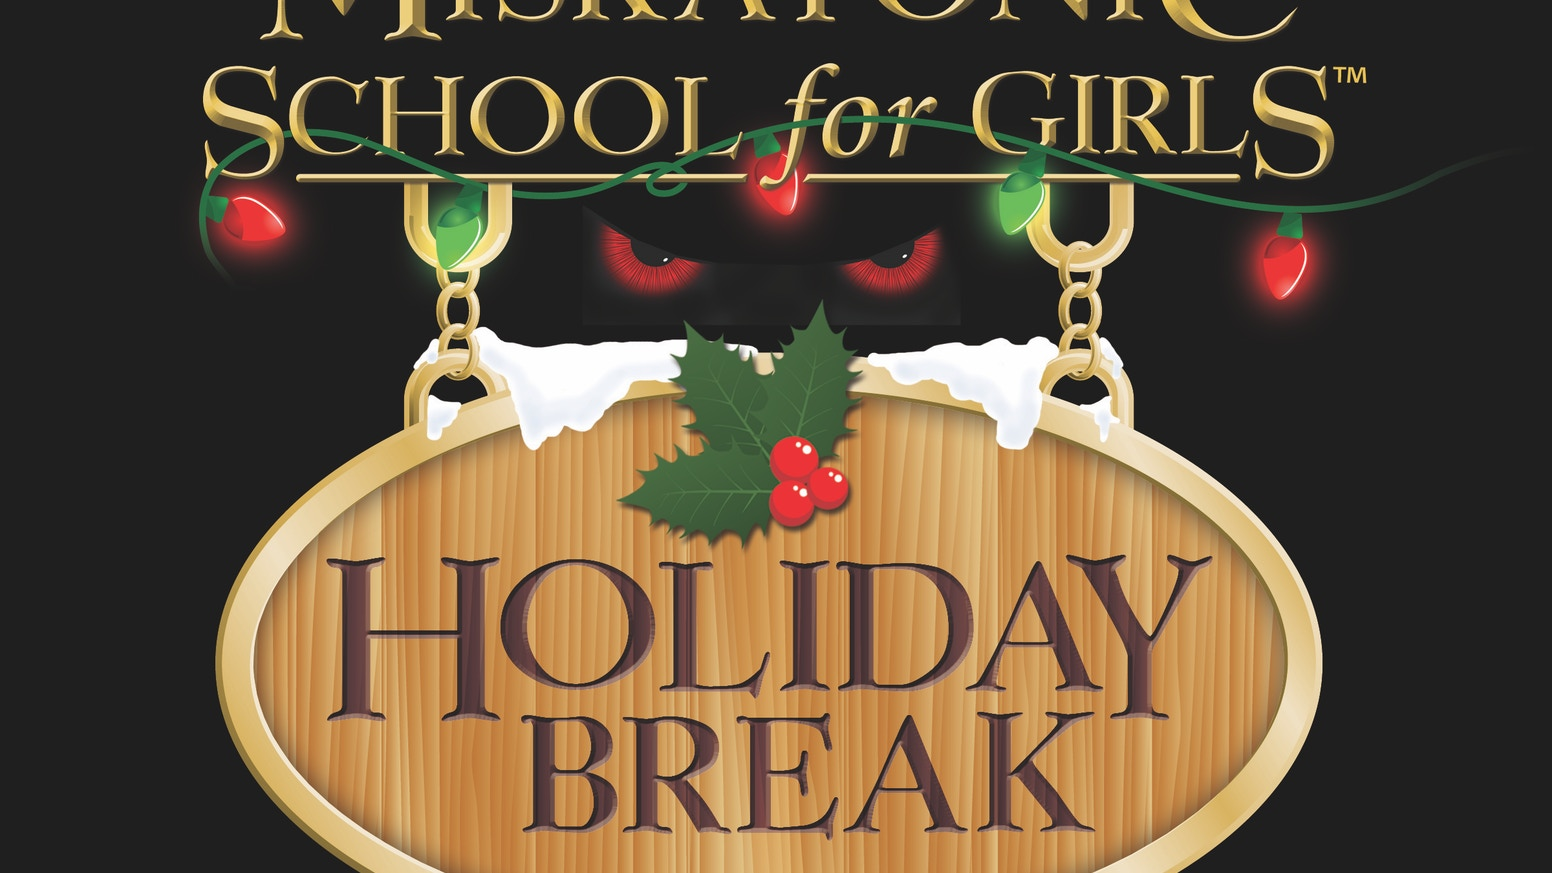 It's holiday time at the Miskatonic School for Girls. Experience even more madness with the expansion to our bestselling game!